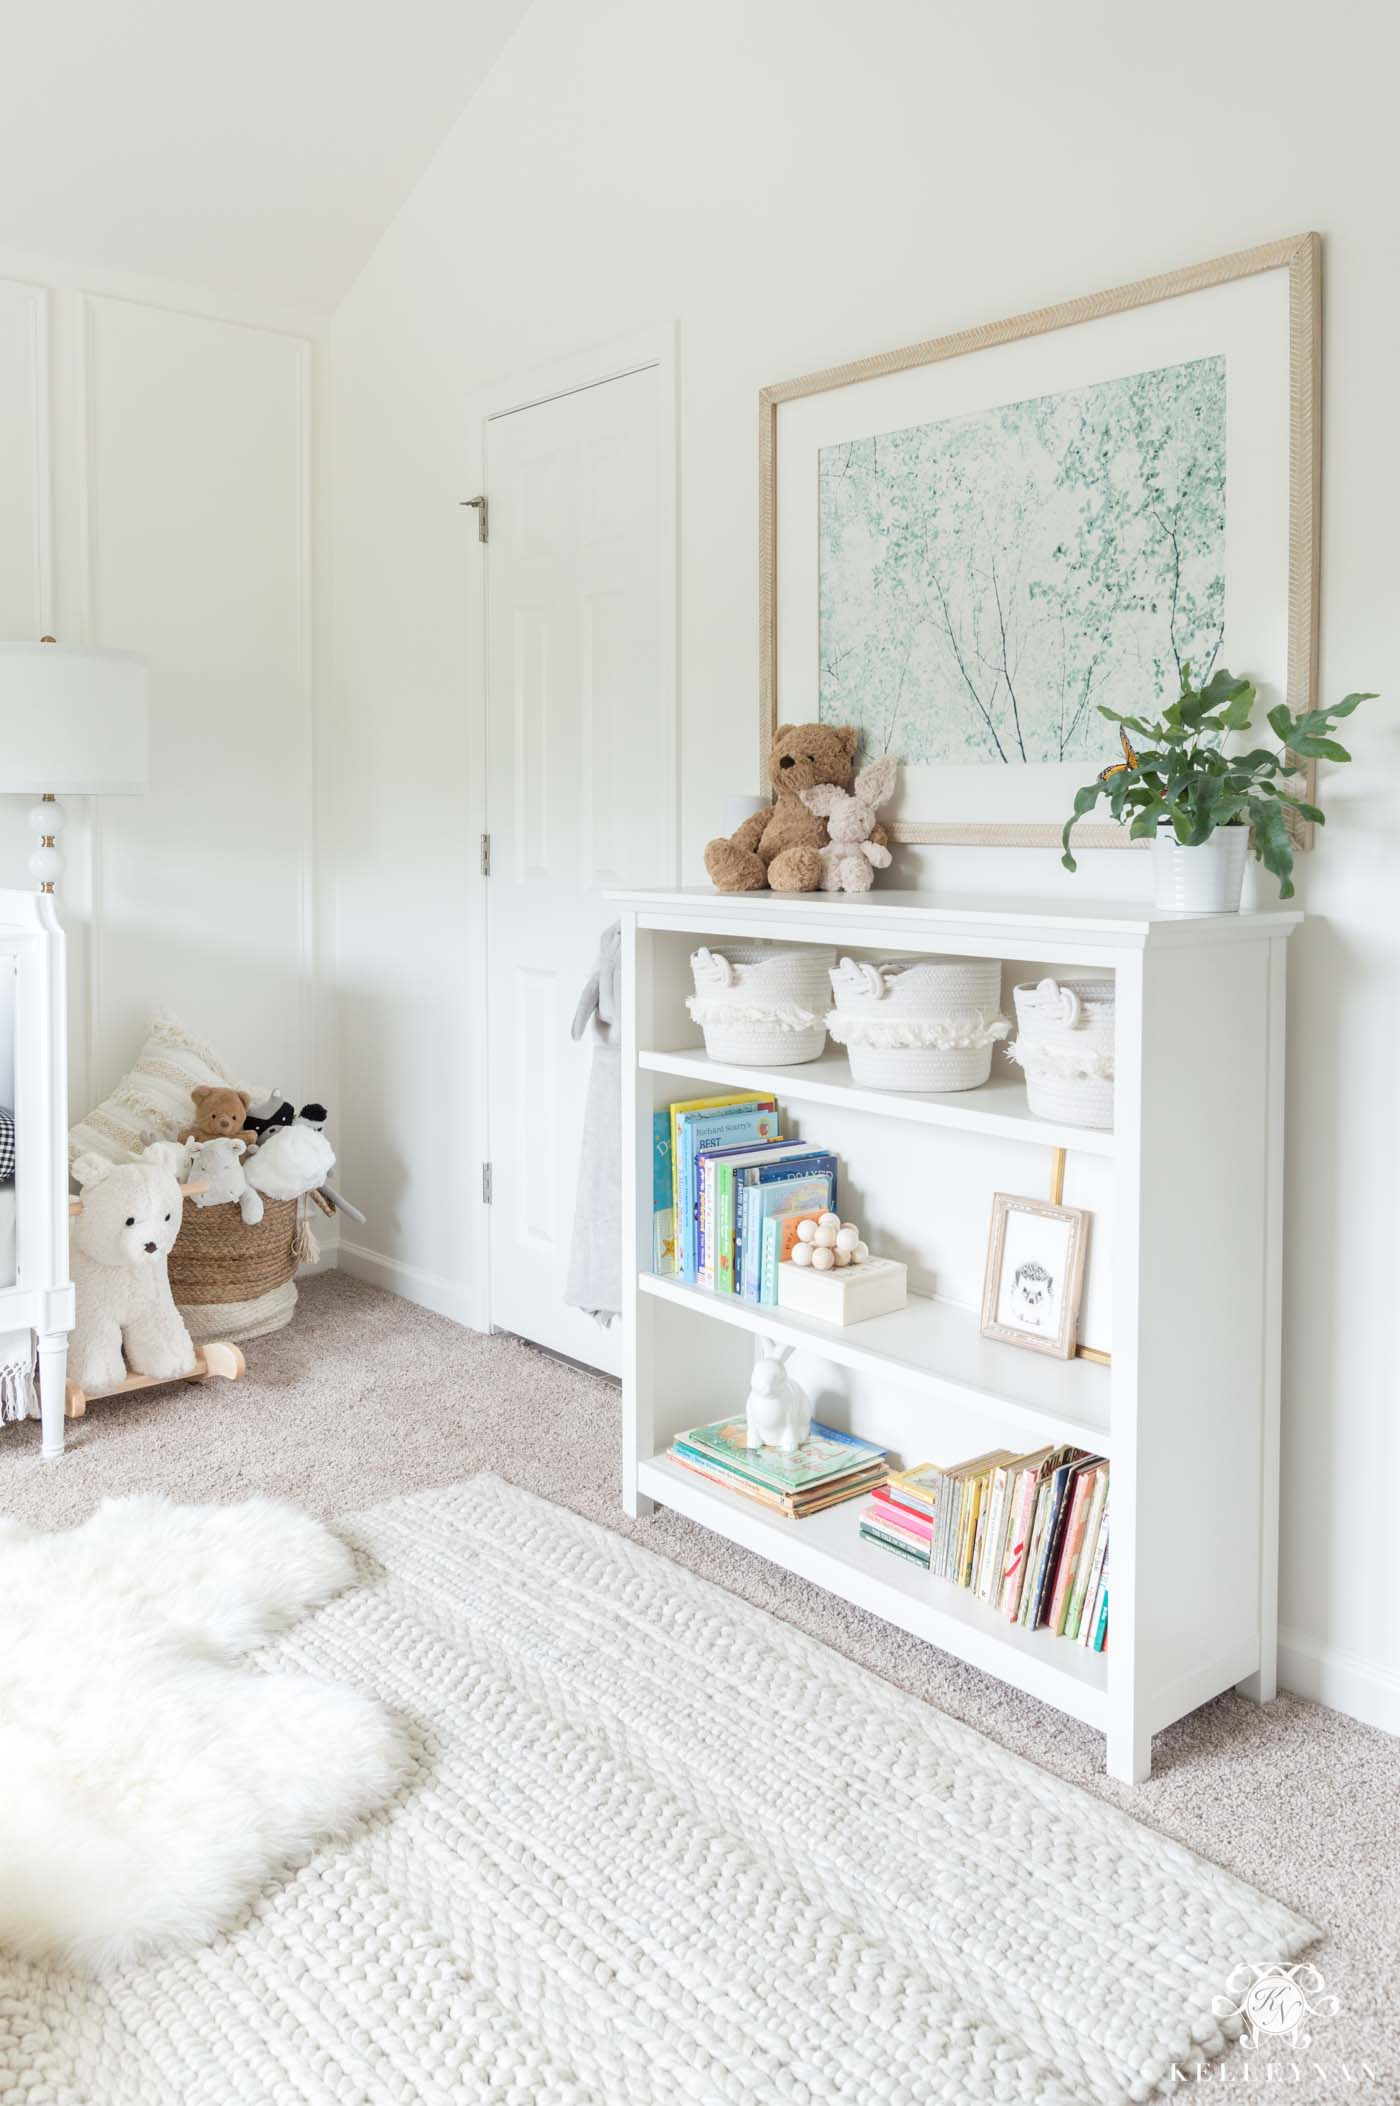 Baby room styled bookshelf and decor